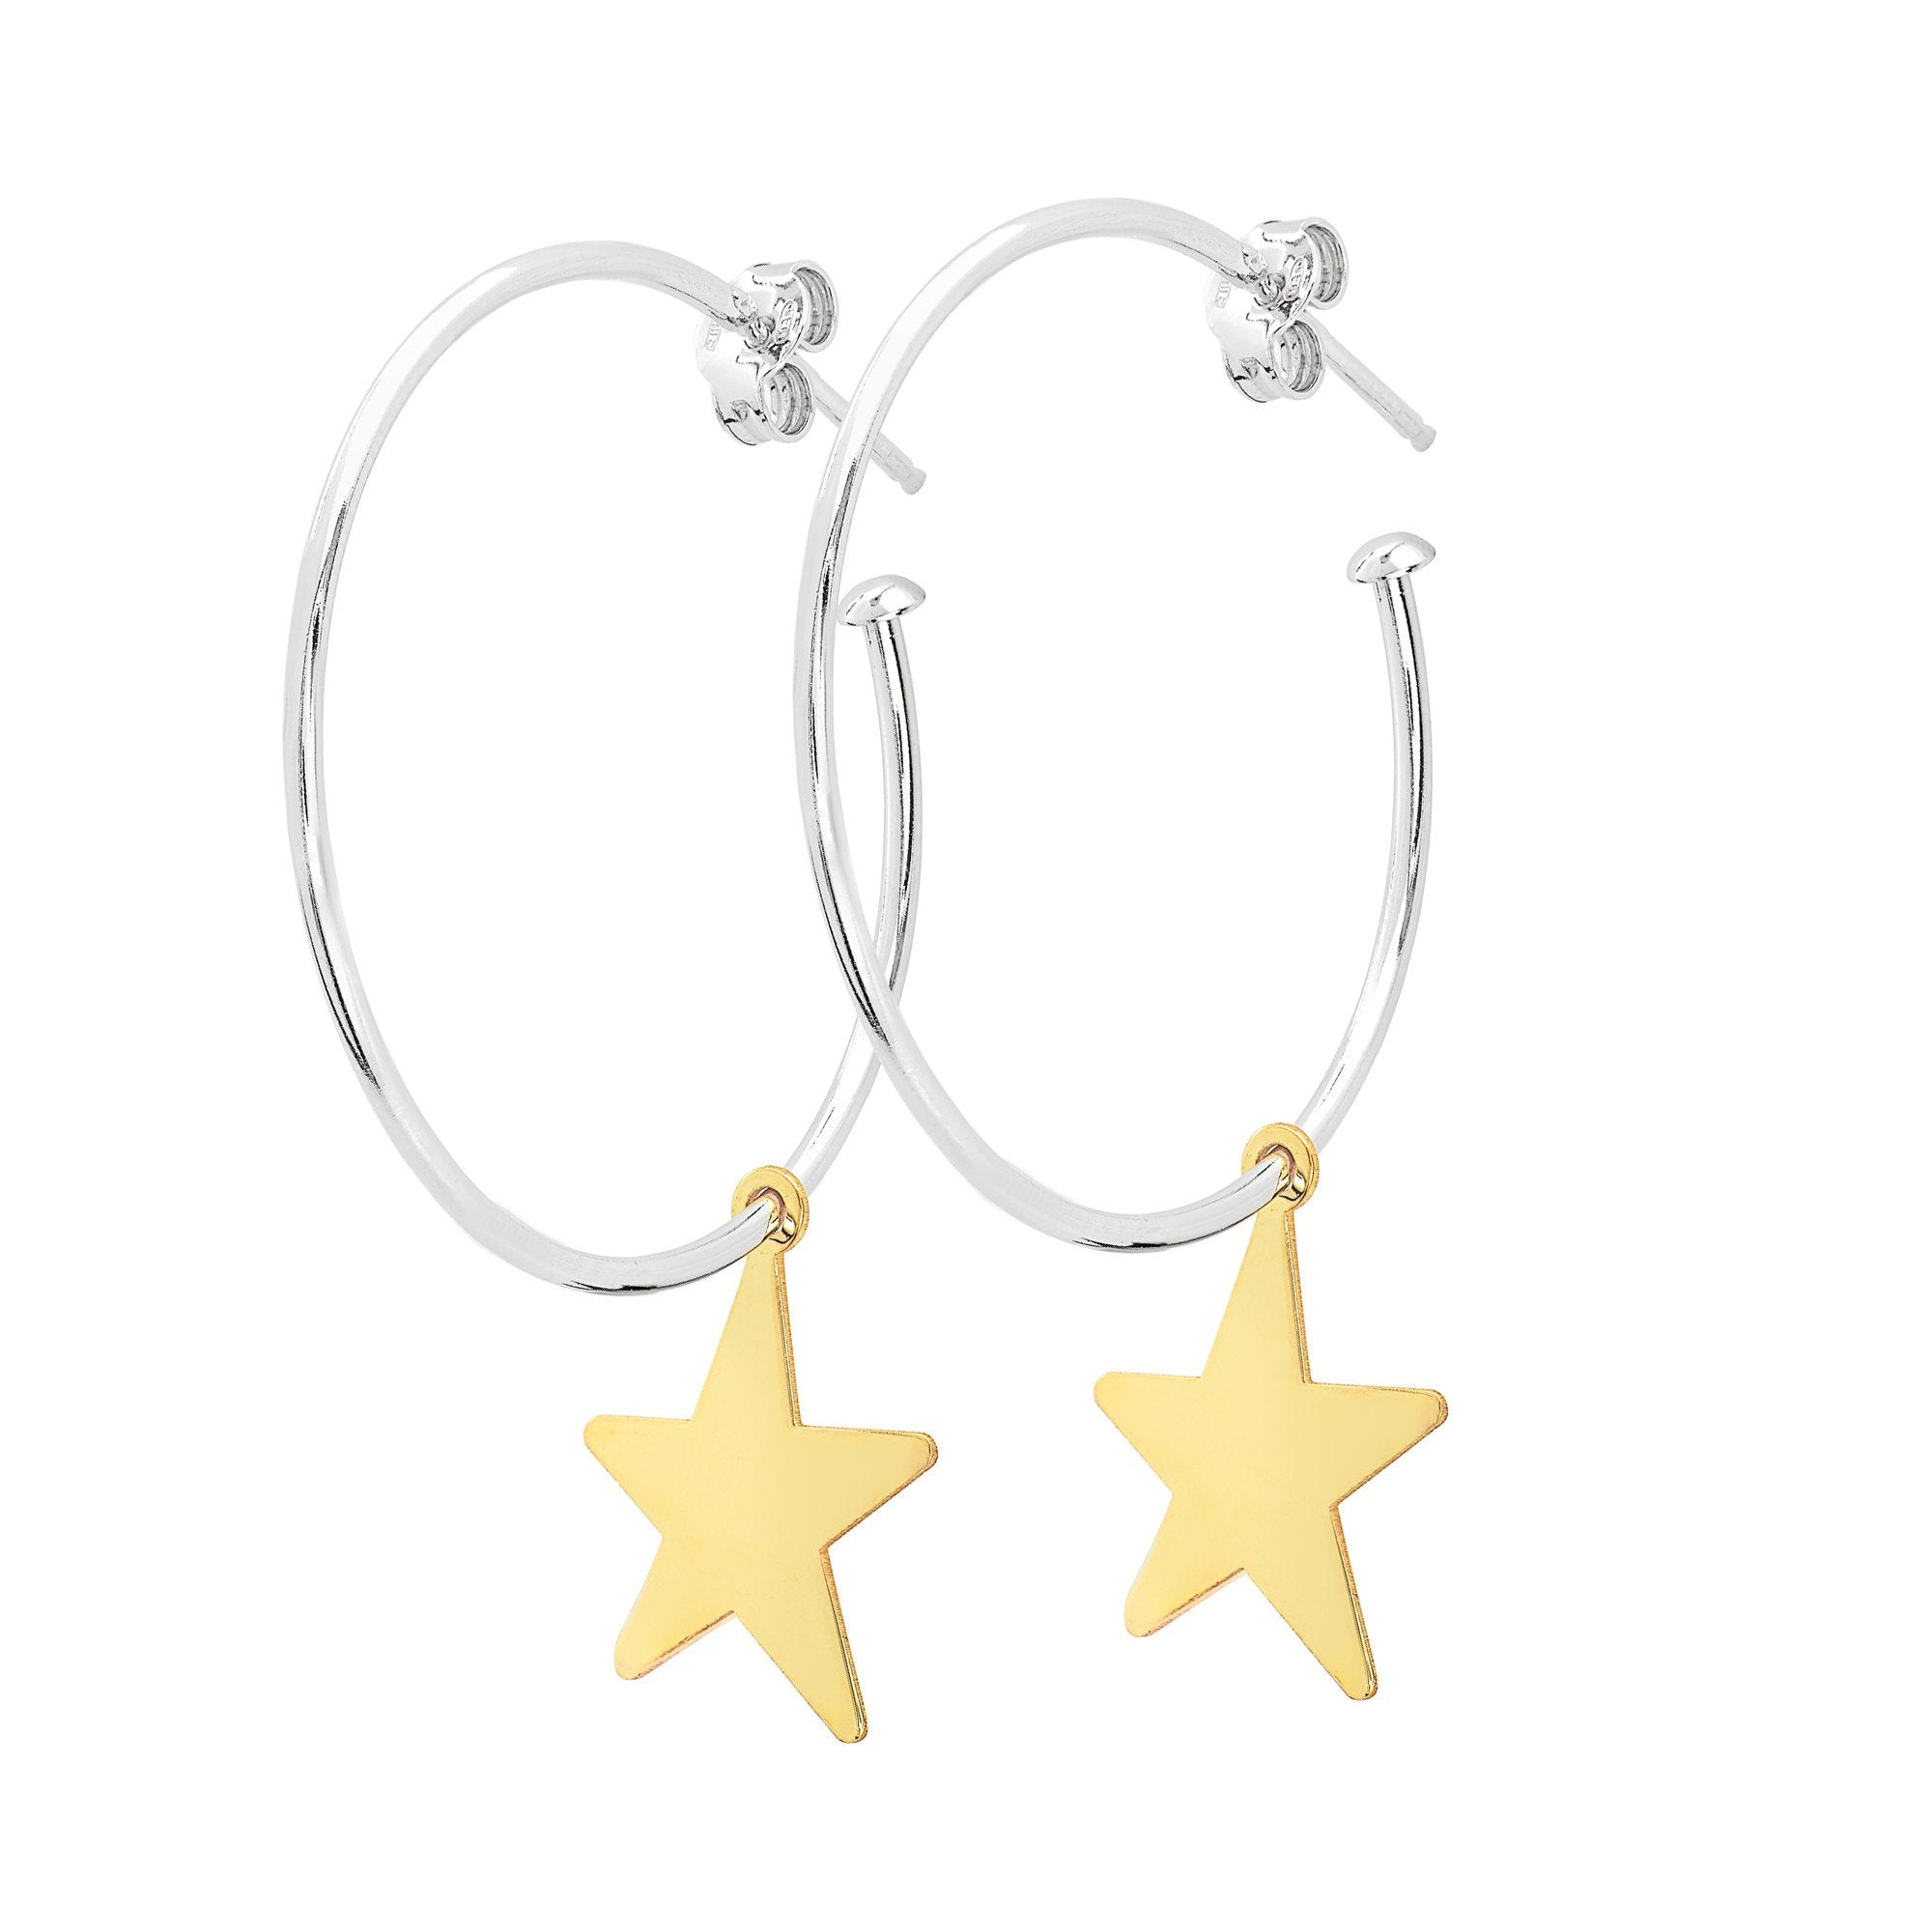 La STELLA CHARM Hoops - The Hoop Station 925 Sterling Silver Hoop Earrings Gold Huggies